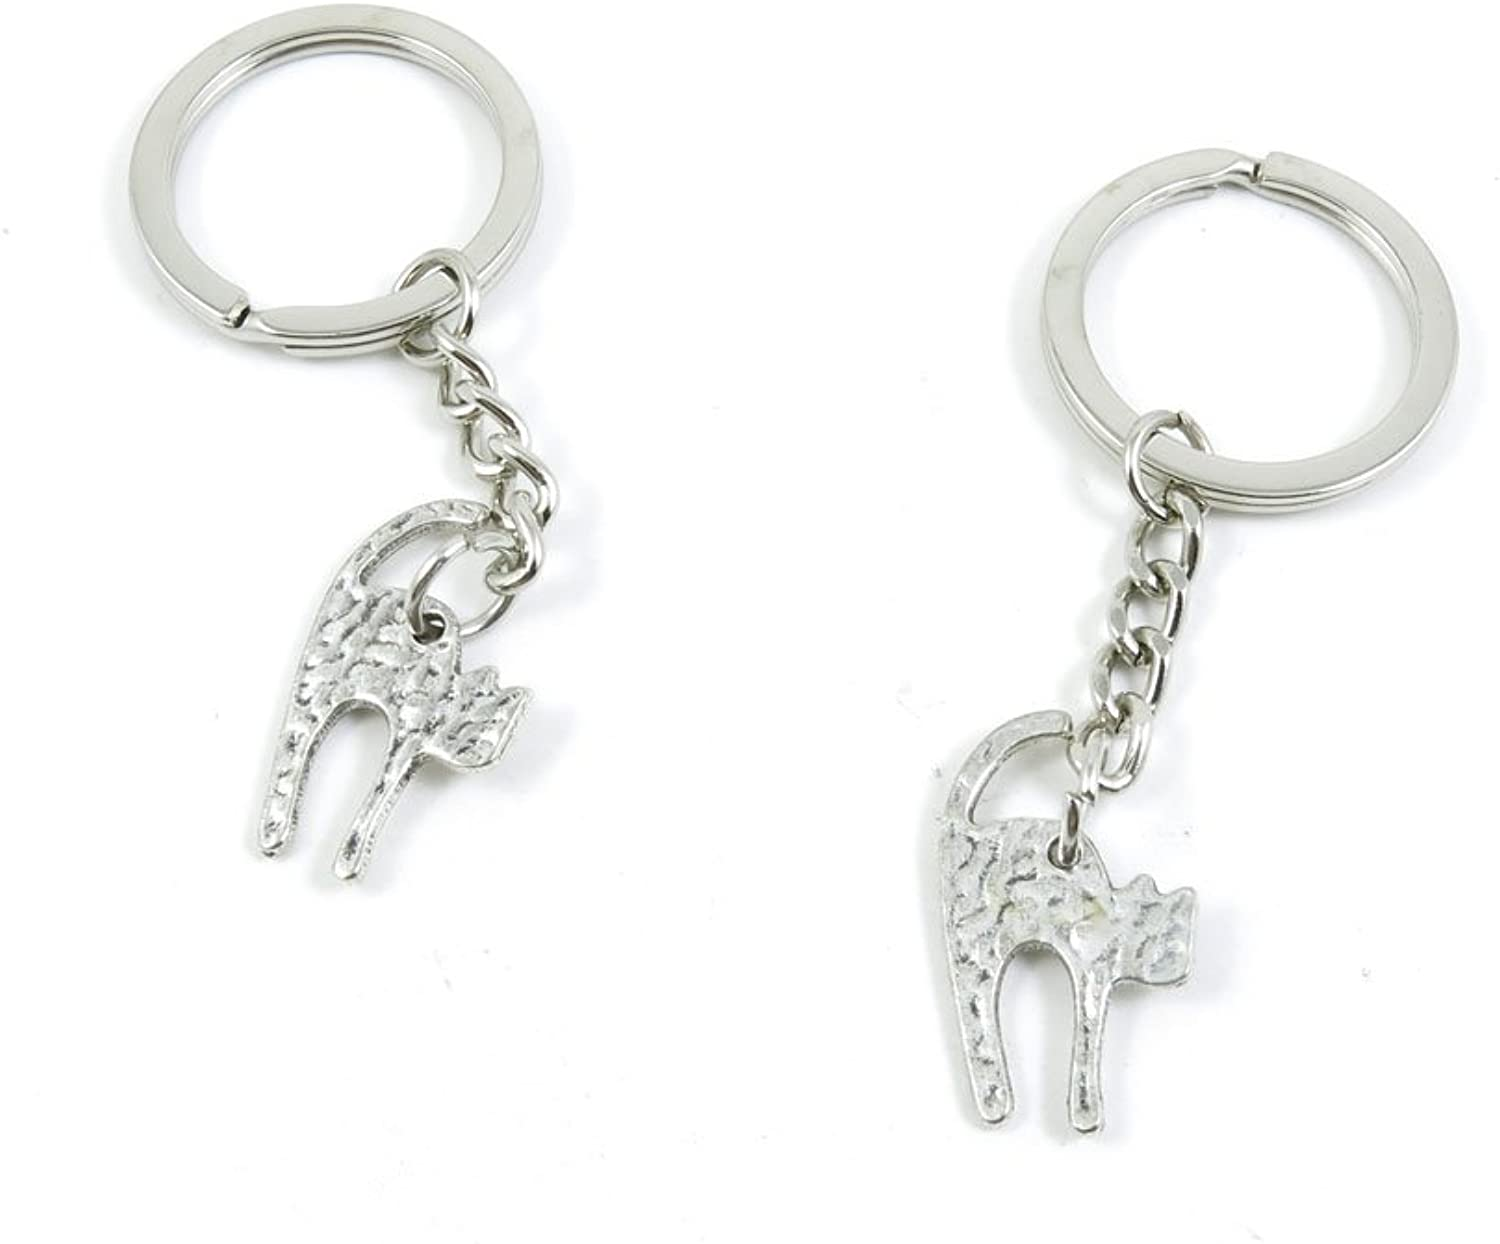 210 Pieces Fashion Jewelry Keyring Keychain Door Car Key Tag Ring Chain Supplier Supply Wholesale Bulk Lots X1WY3 Cat Kitten